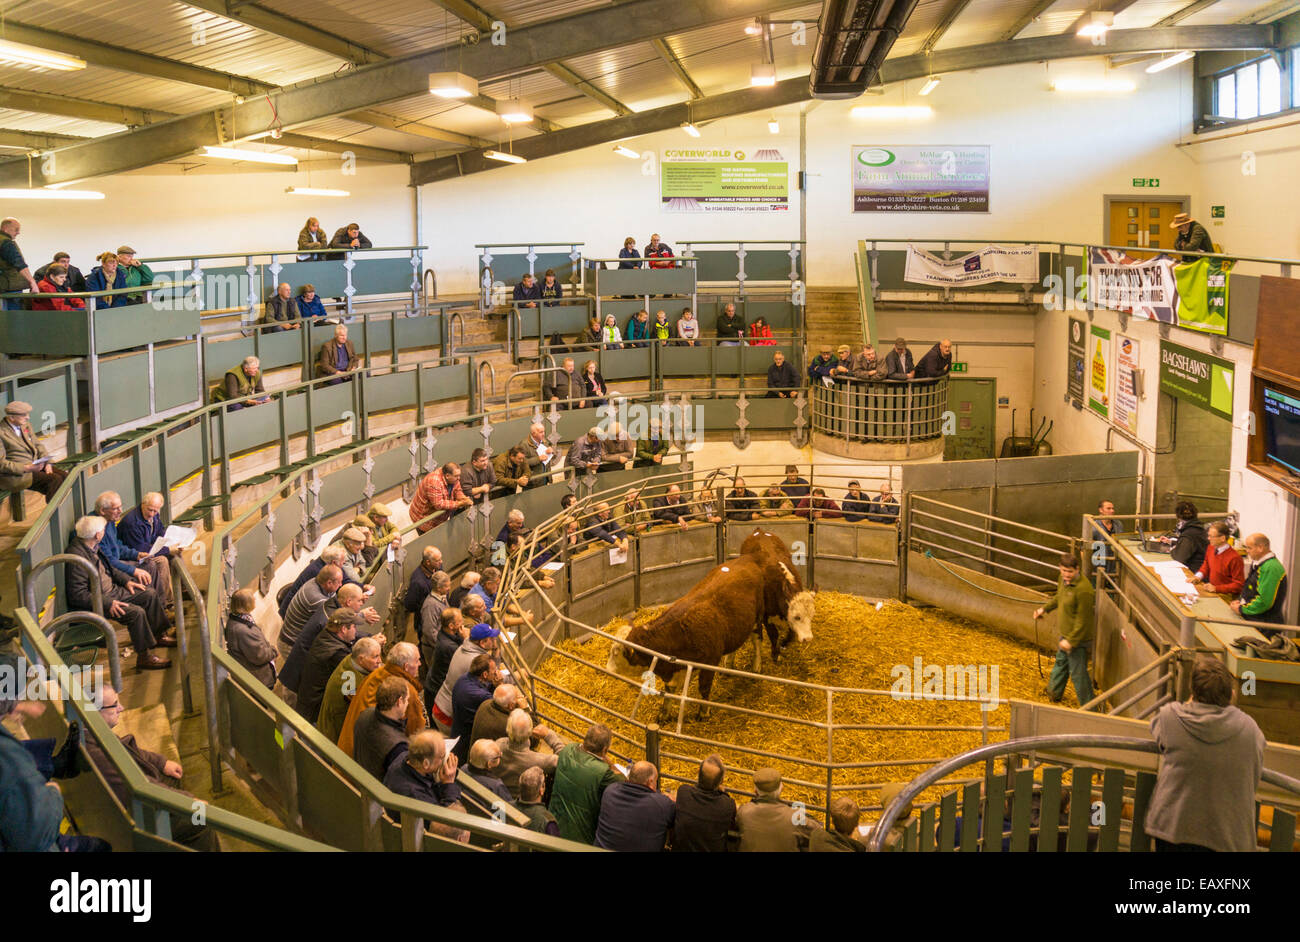 Bakewell Livestock Market Bakewell Peak District Derbyshire England UK GB EU Europe - Stock Image